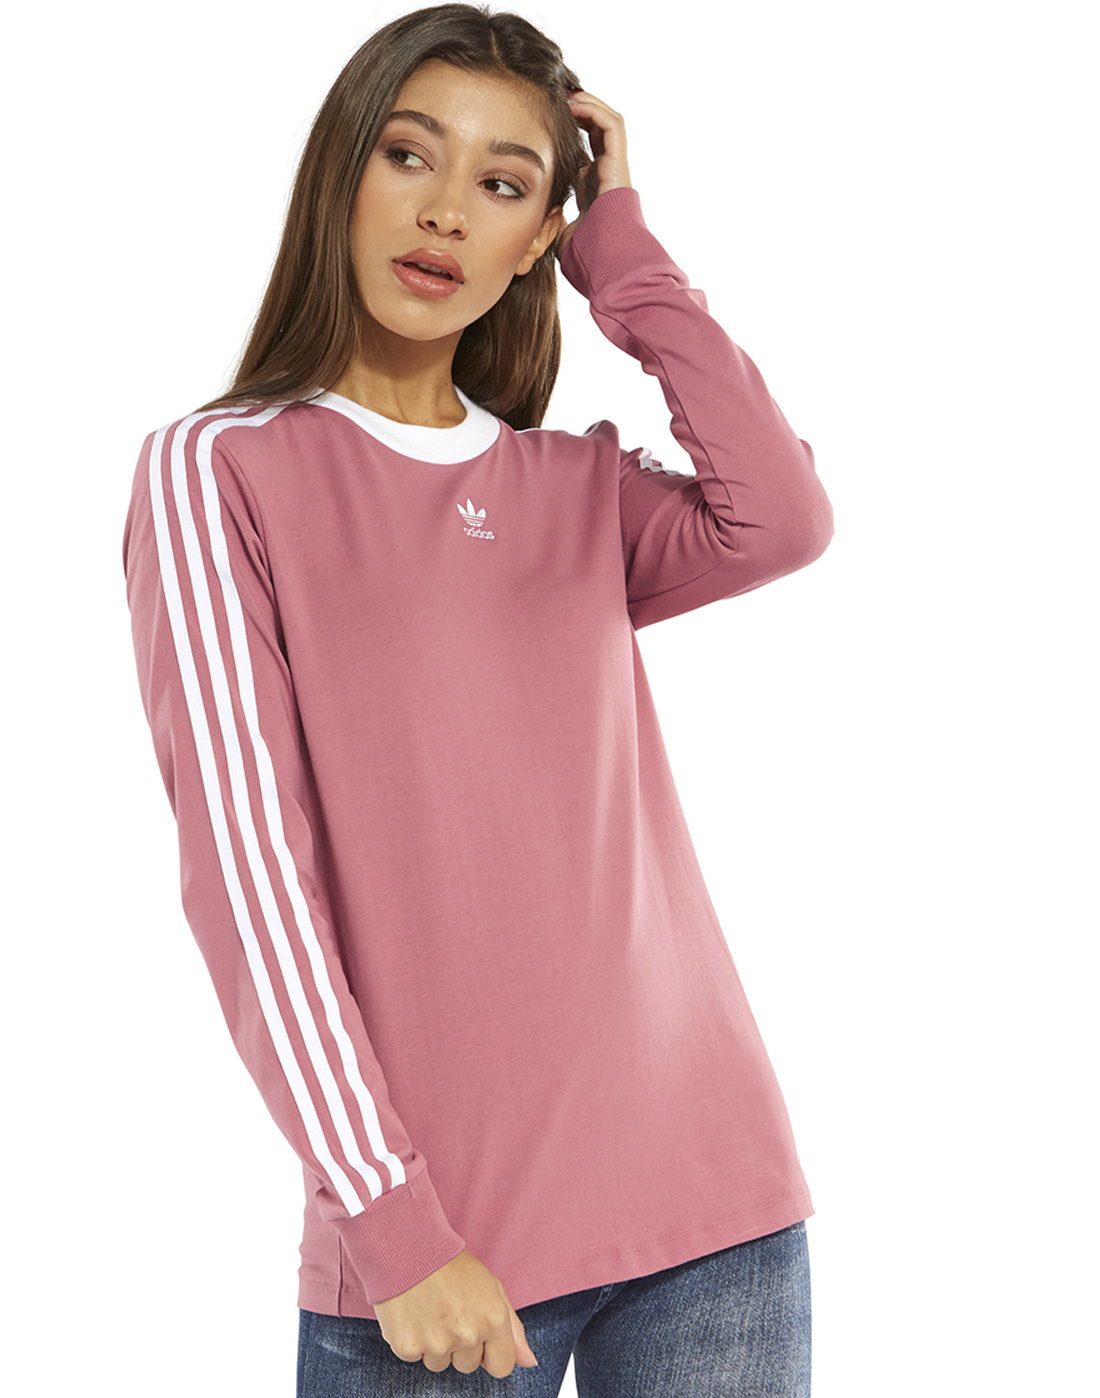 74ebdb9c397 Women s Pink adidas Originals Long Sleeve T-Shirt